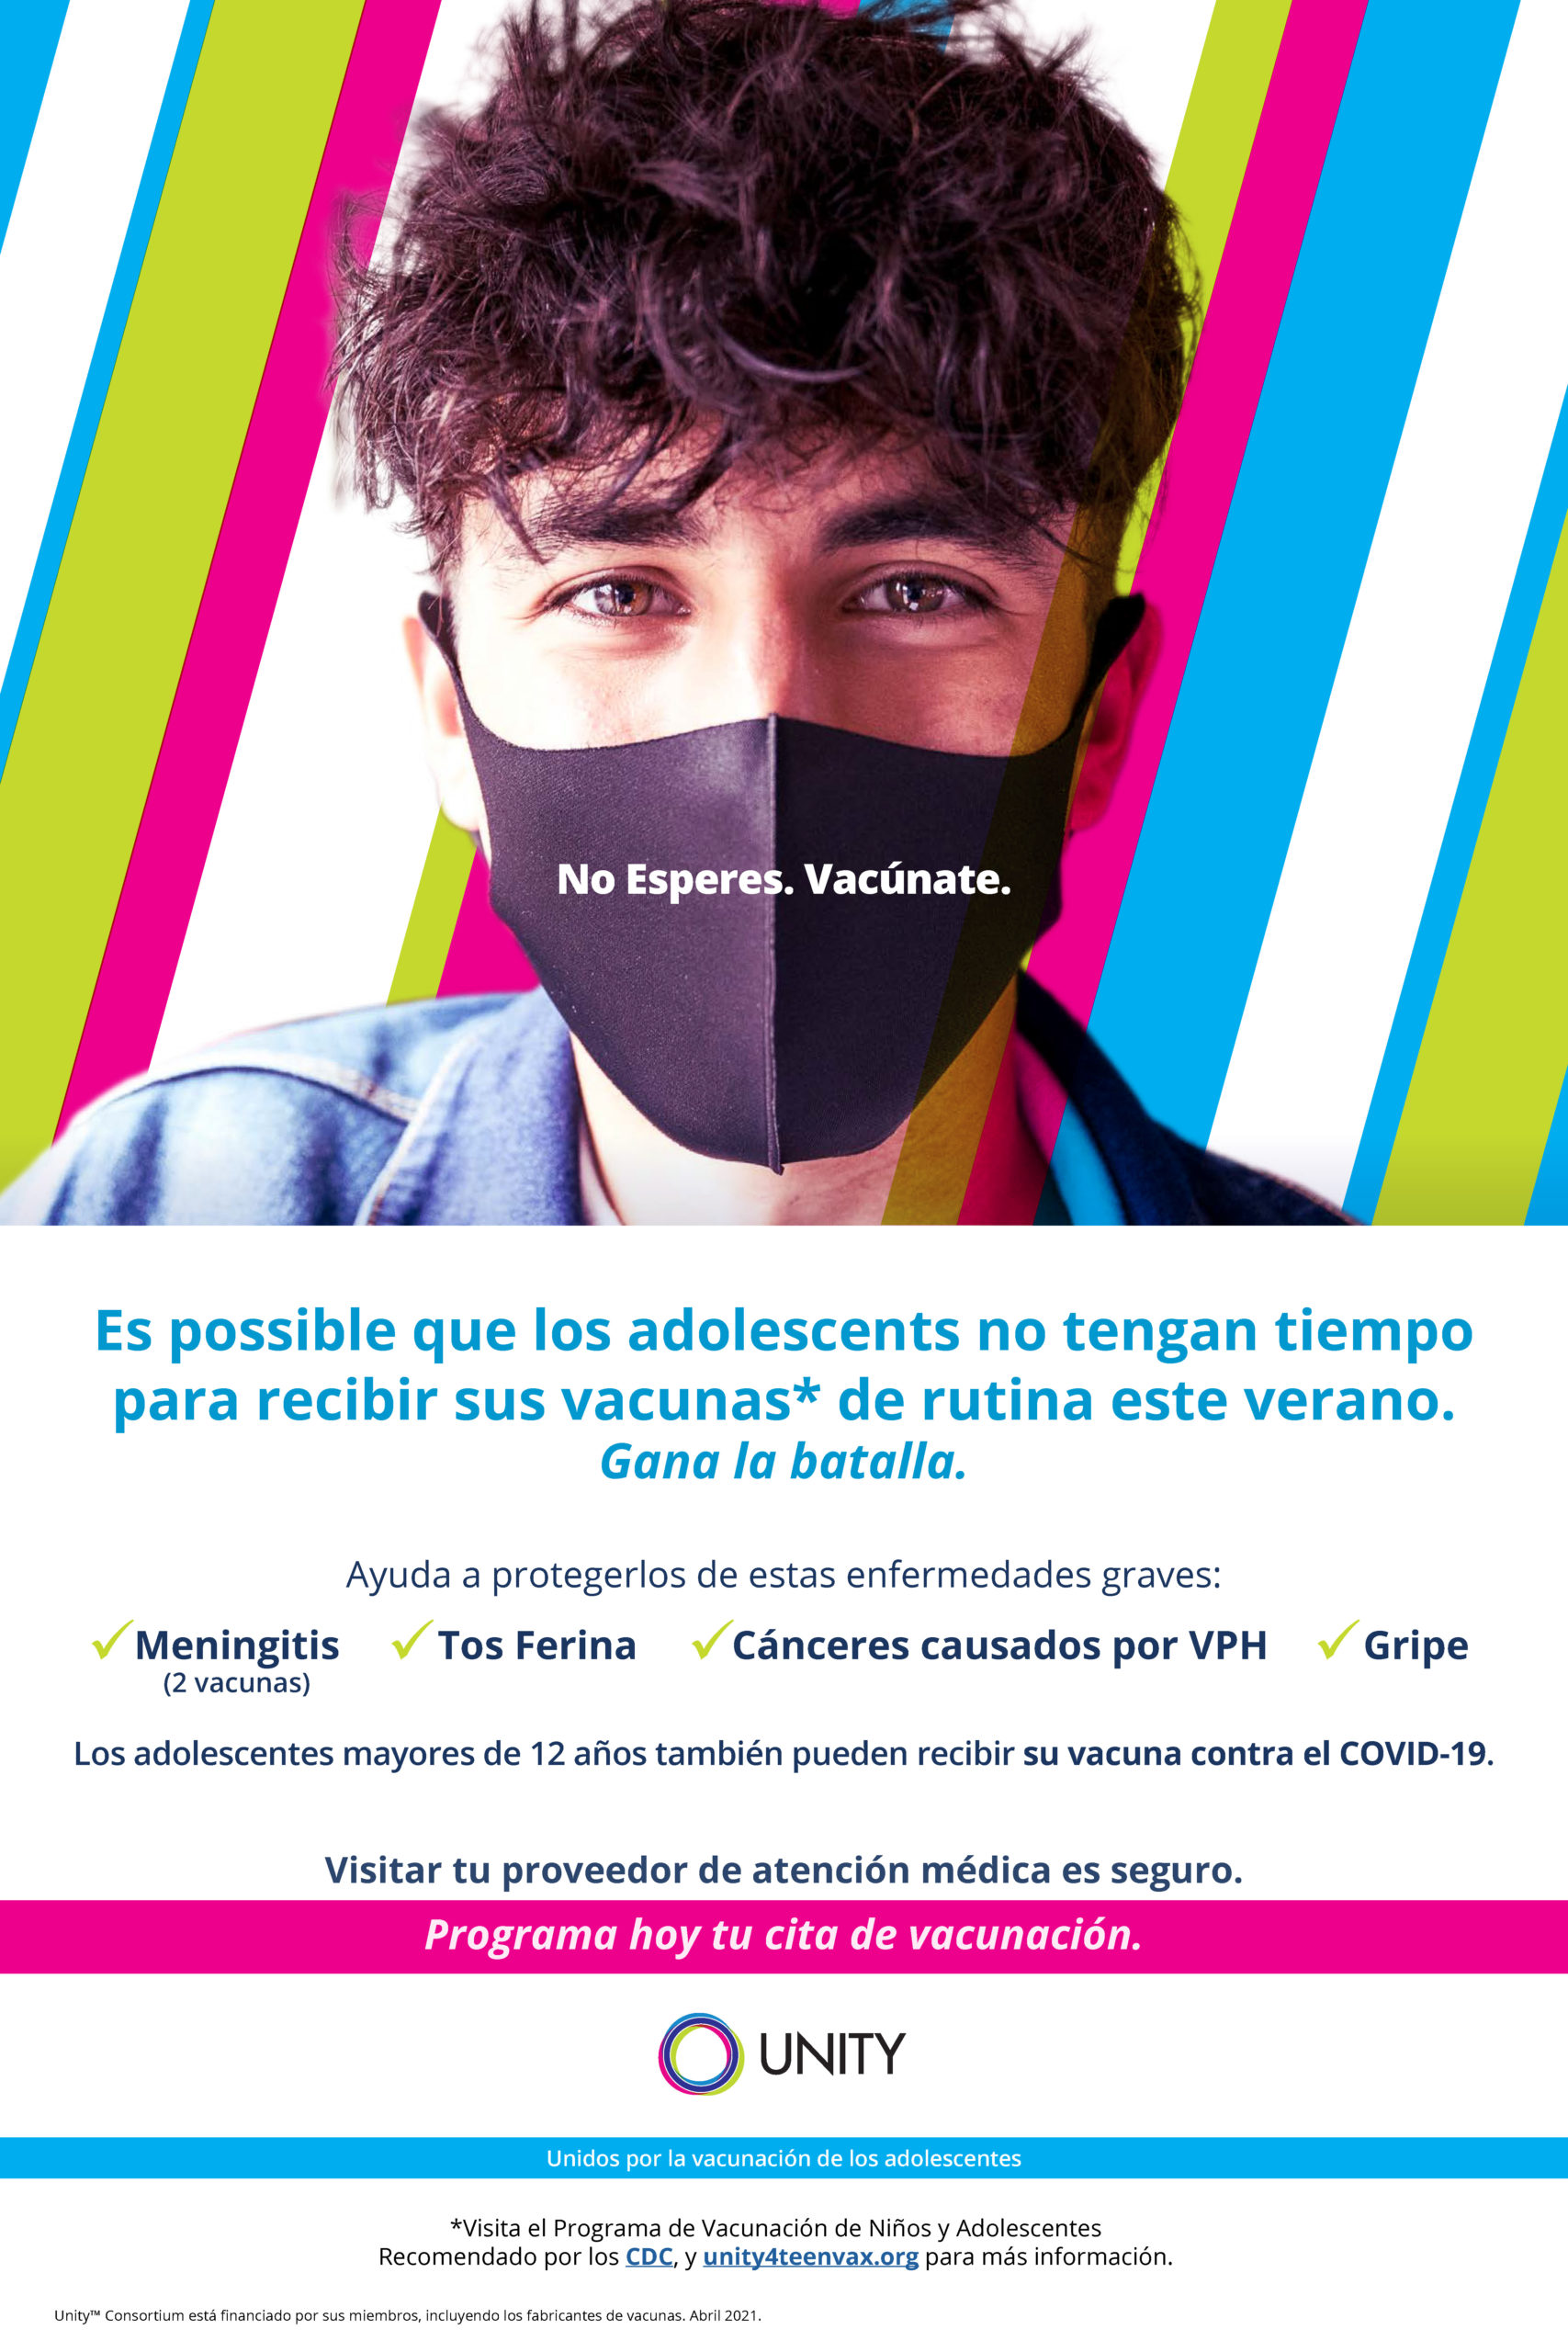 AS_Unity_EBTS_Campaign_Posters_06_Spanish_Page_1